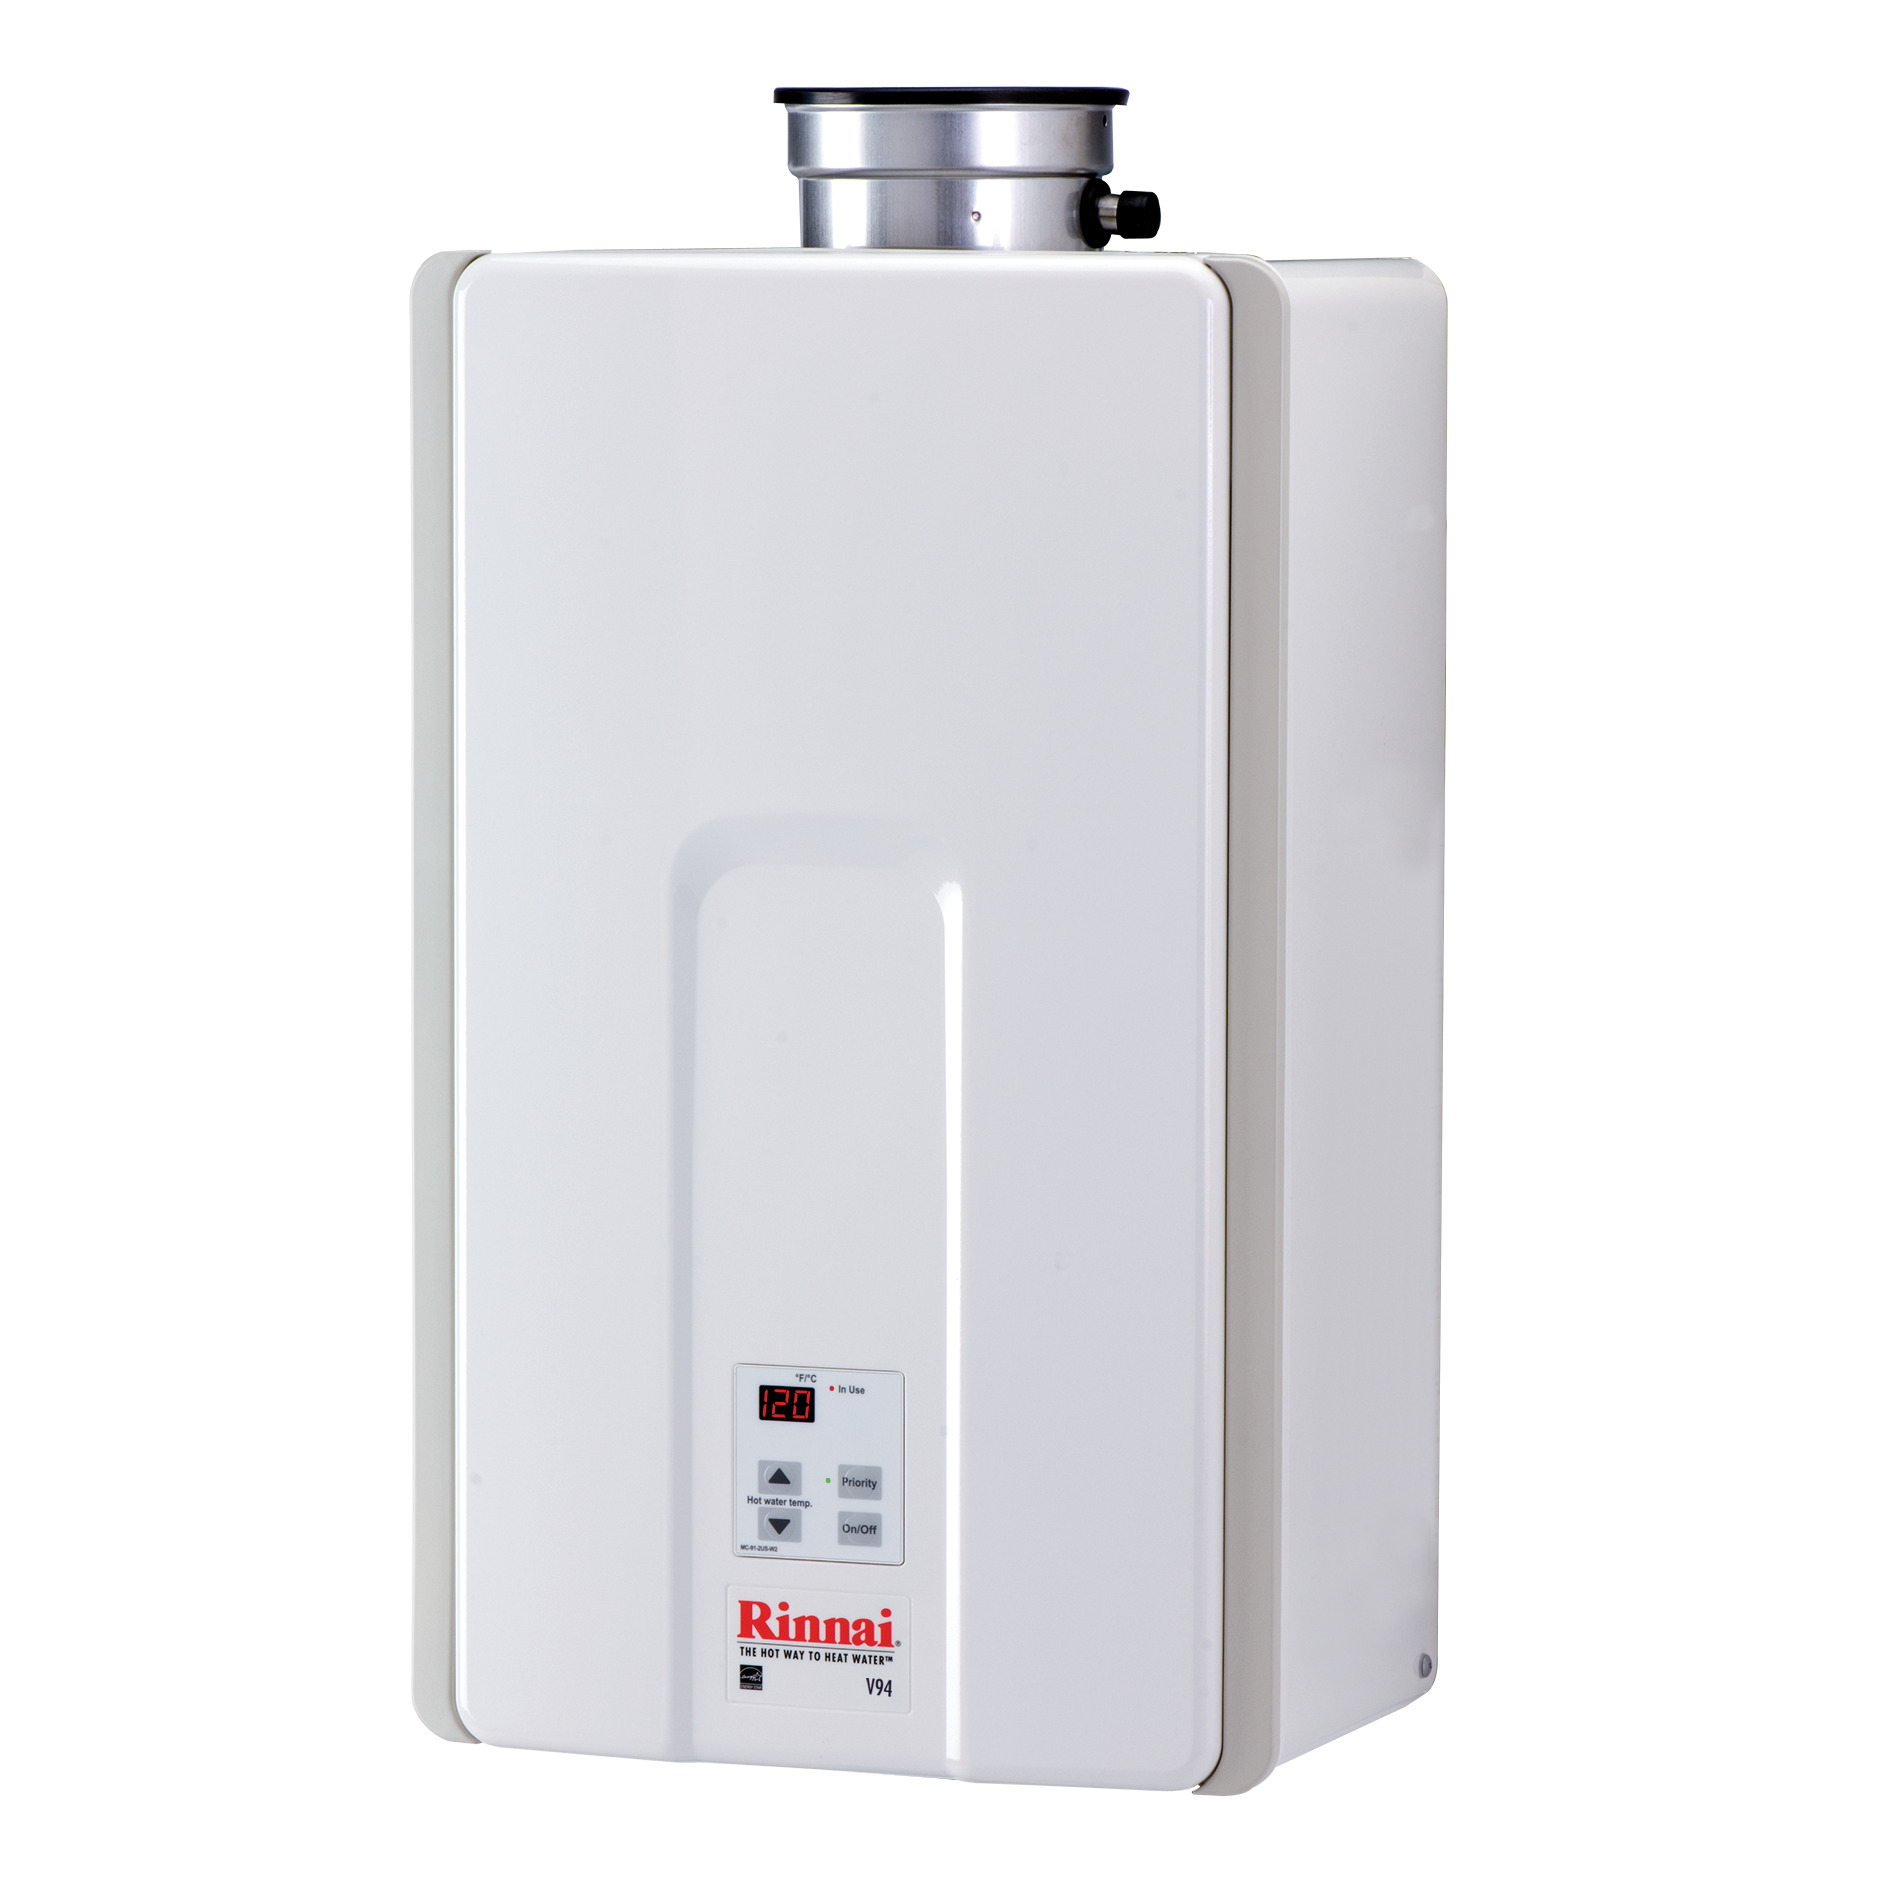 V94xin Tankless Water Heater Rinnai